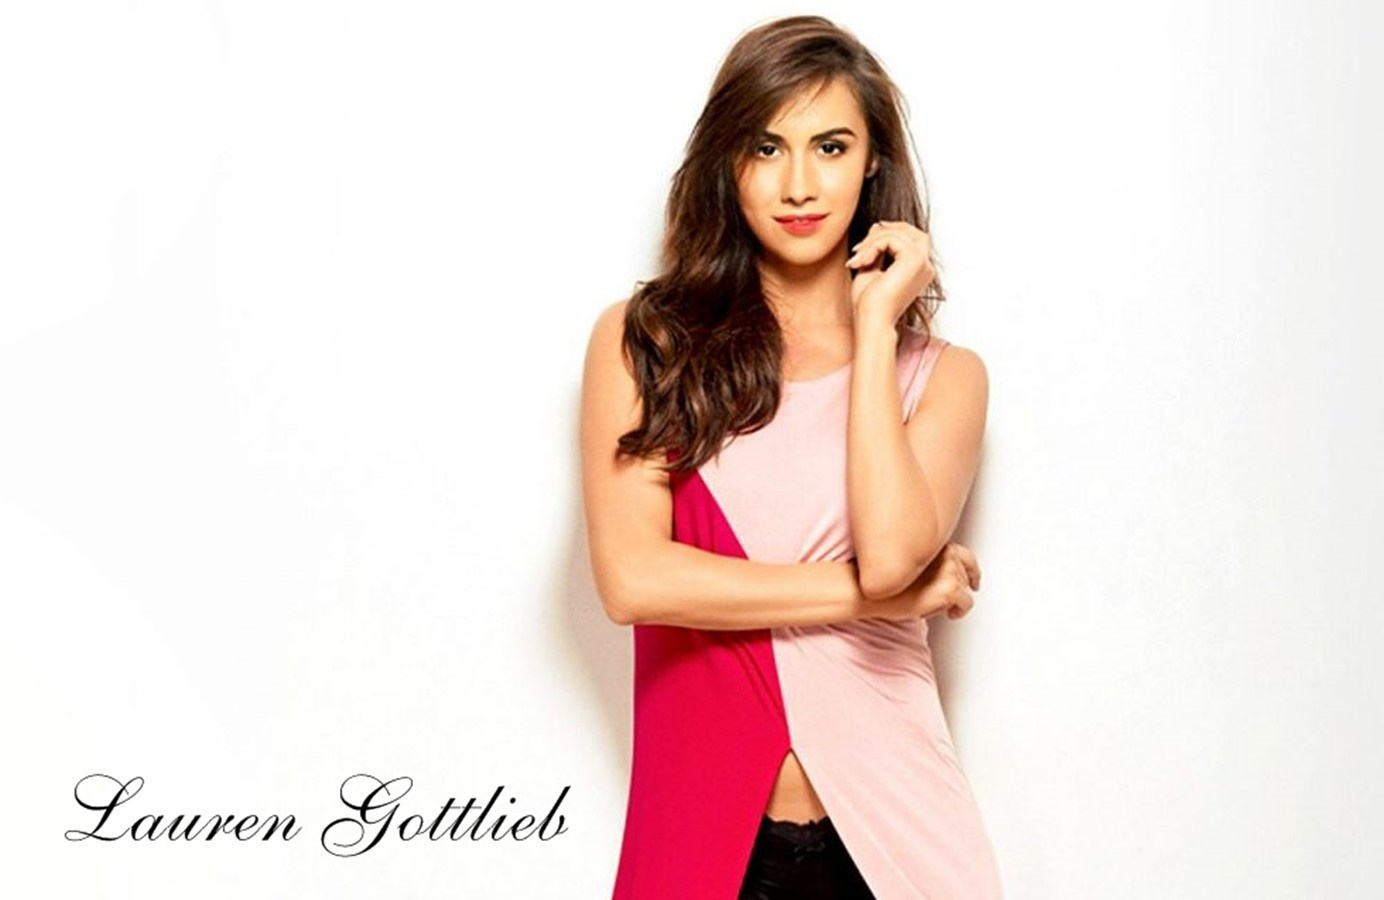 Lauren Gottlieb Hot